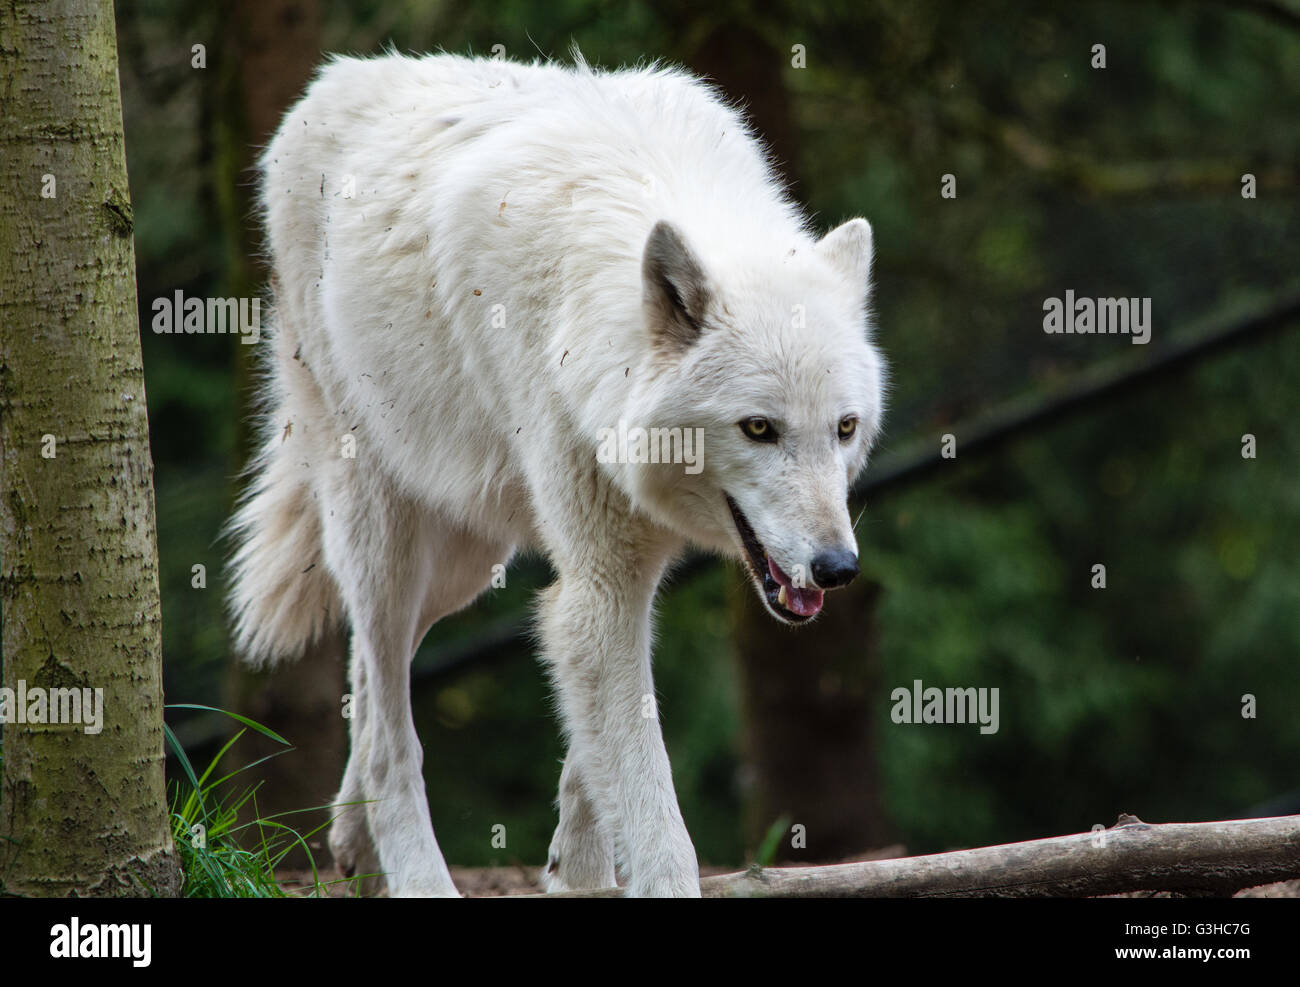 Grey Wolf at Woodland Park walks across the compound - Stock Image